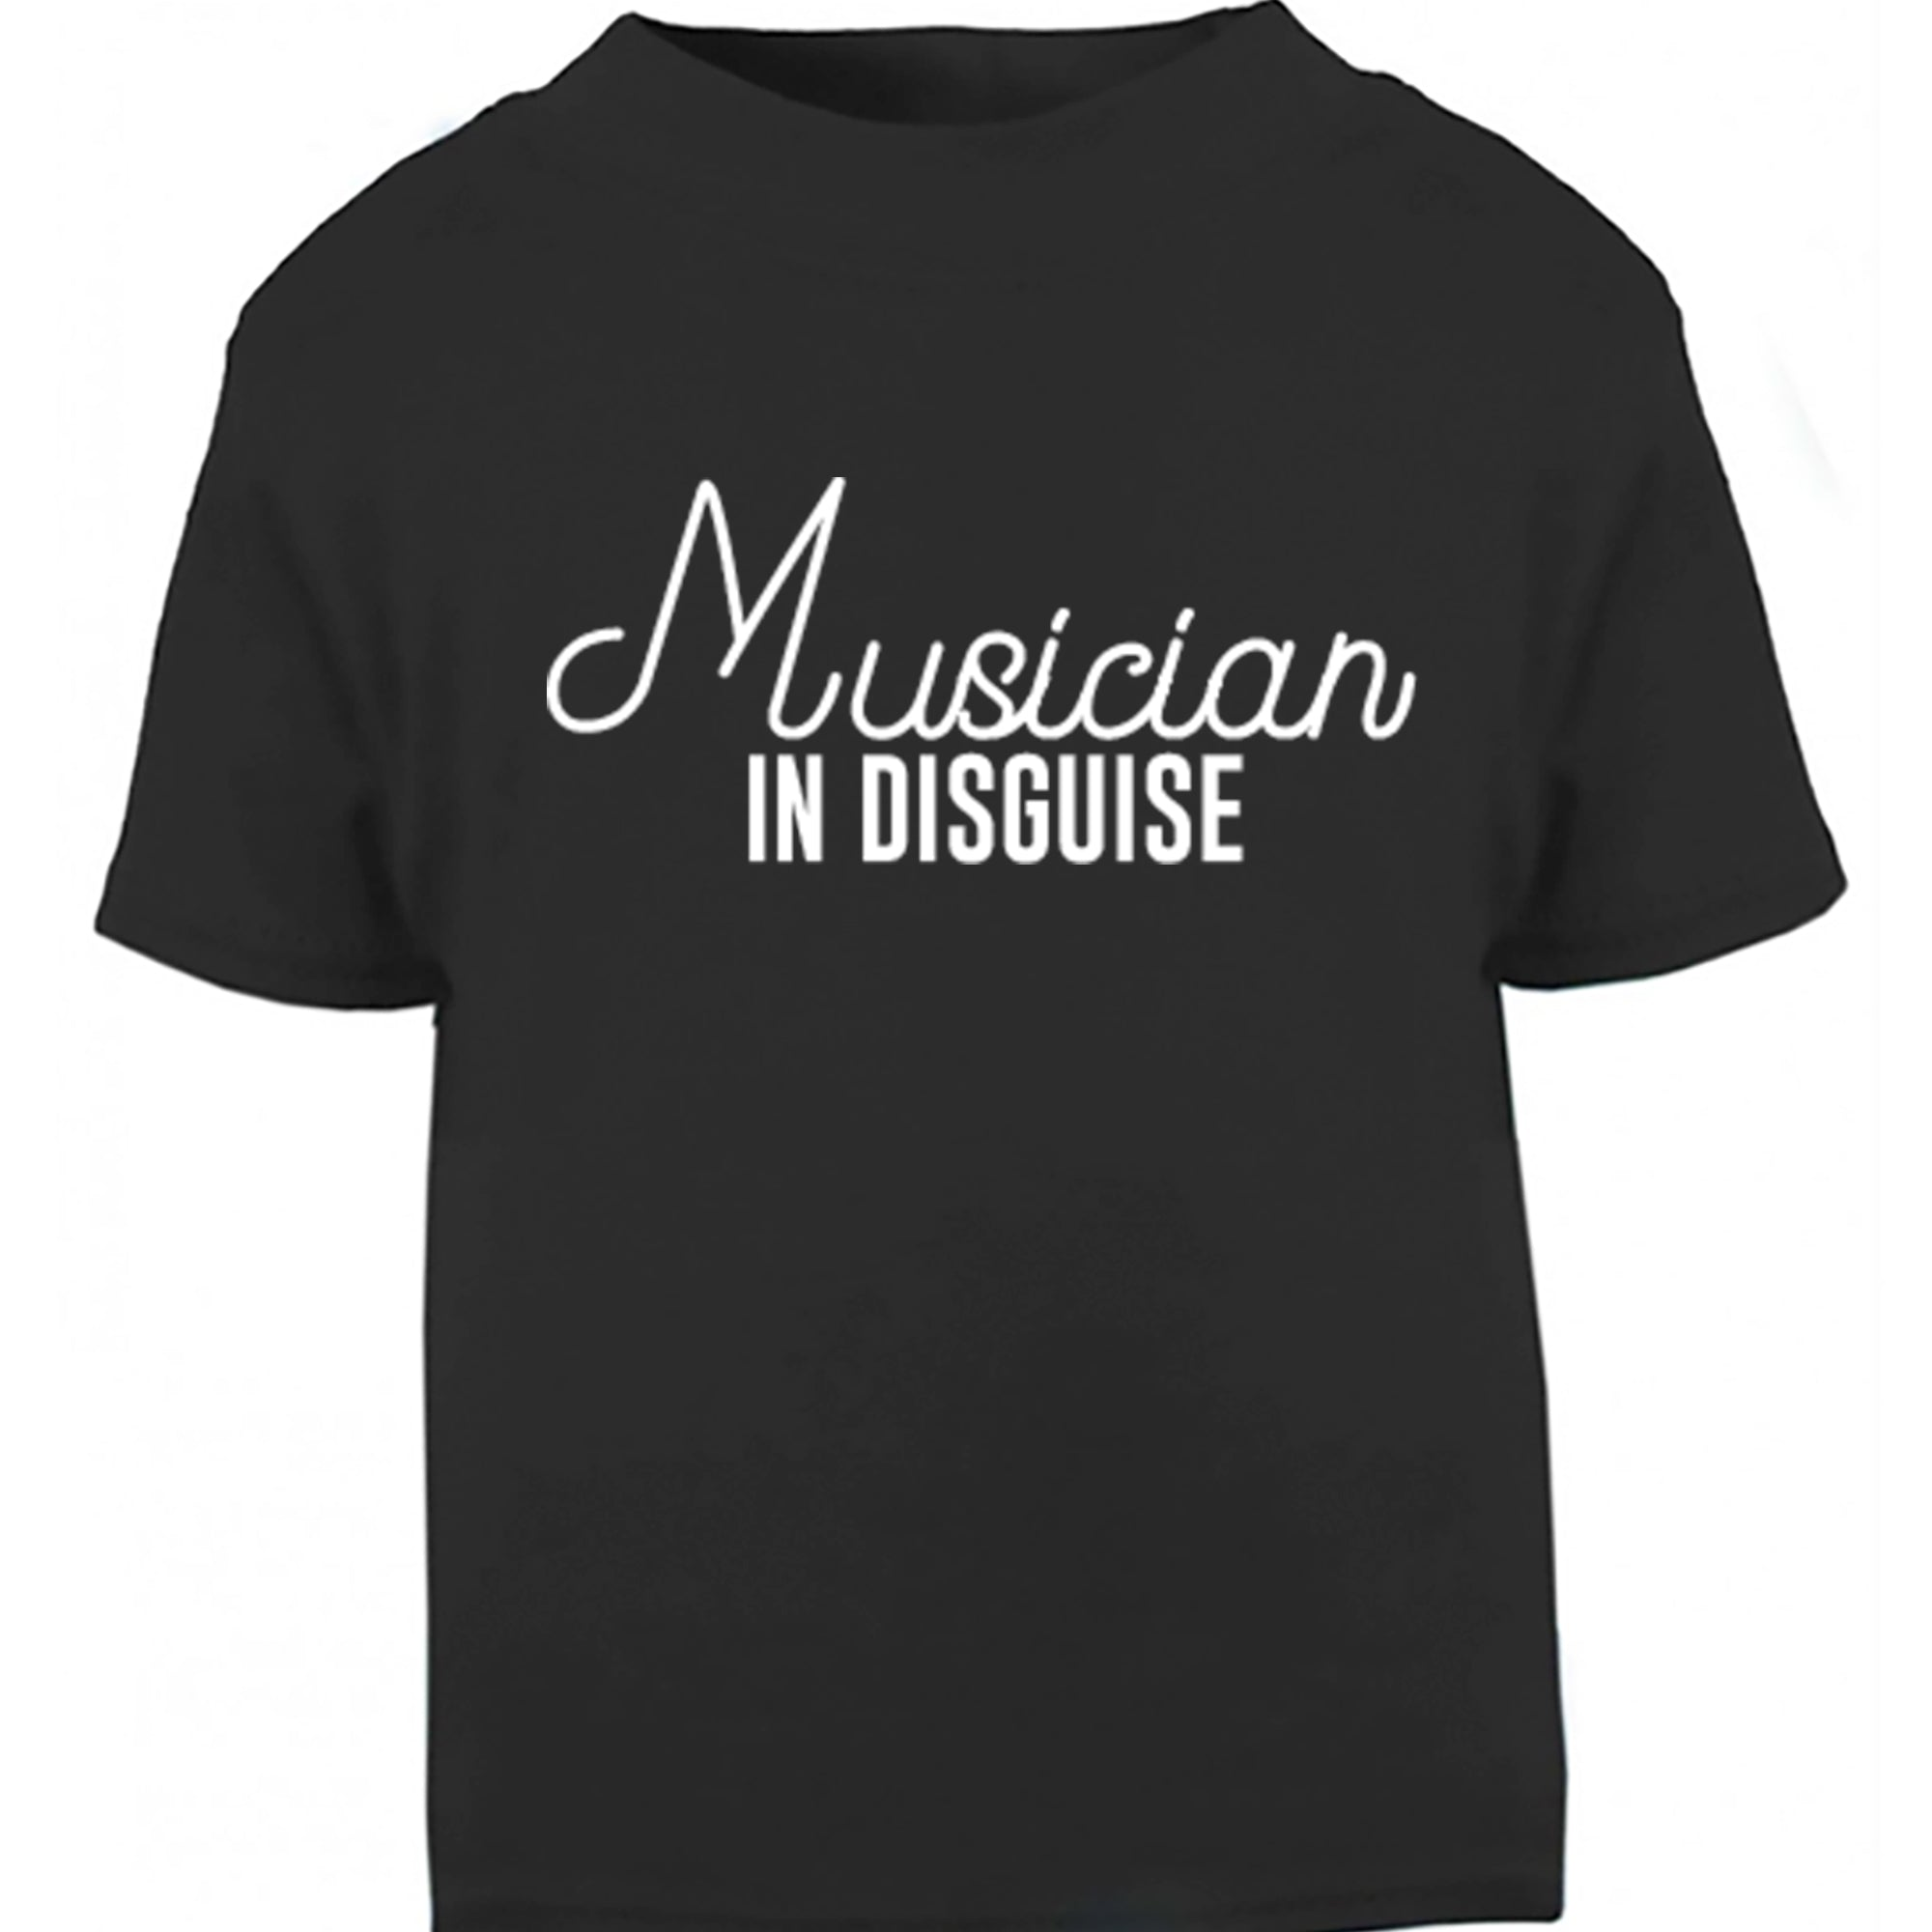 Musician In Disguise Childrens Ages 3/4-12/14 Unisex Fit T-Shirt S0050 - Illustrated Identity Ltd.